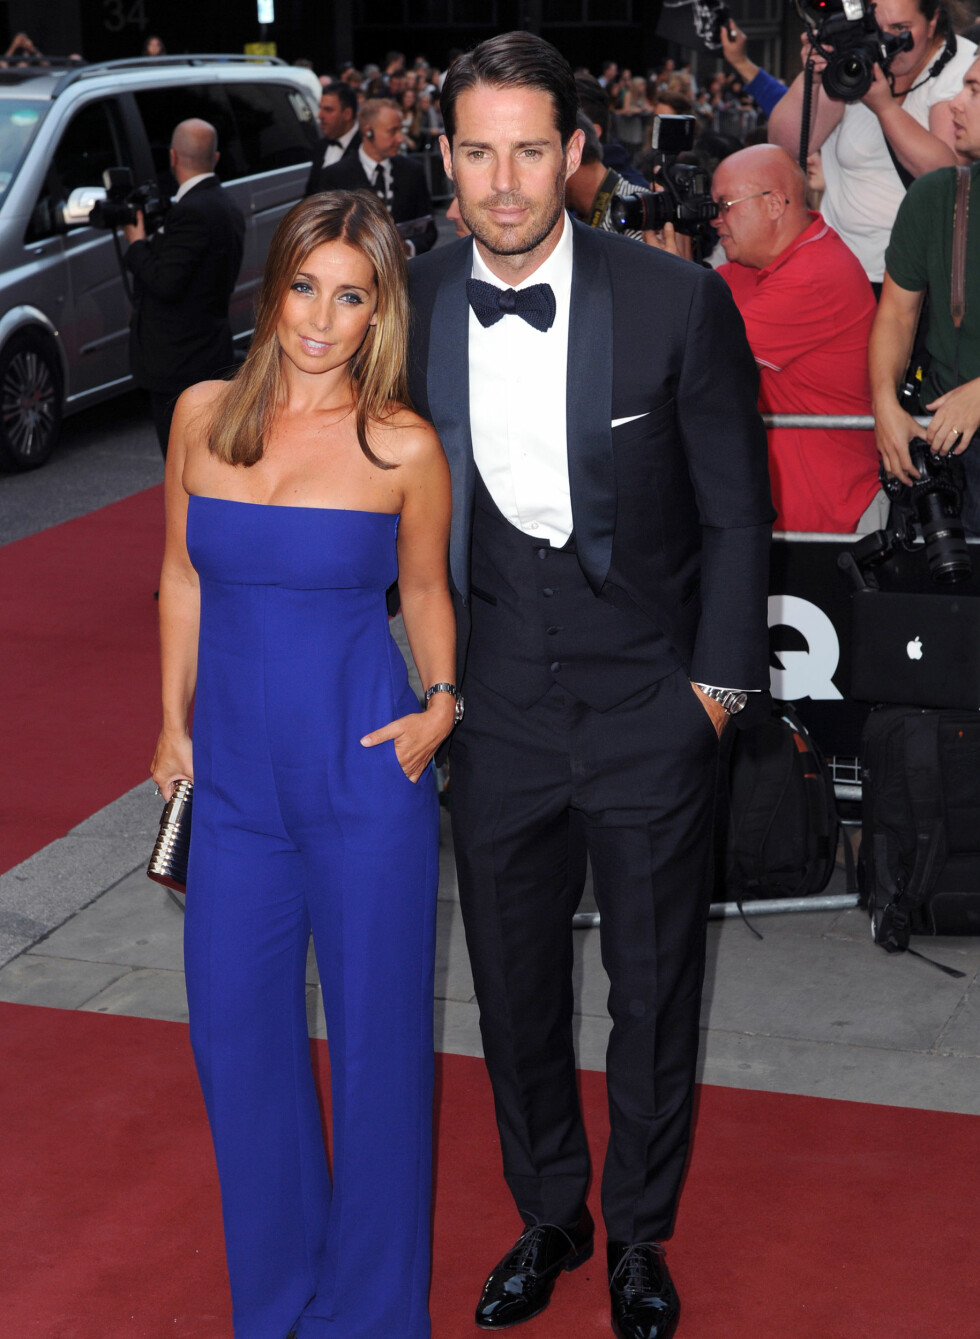 Louise Redknapp og Jamie Redknapp Foto: WireImage/Getty Images/All Over Press